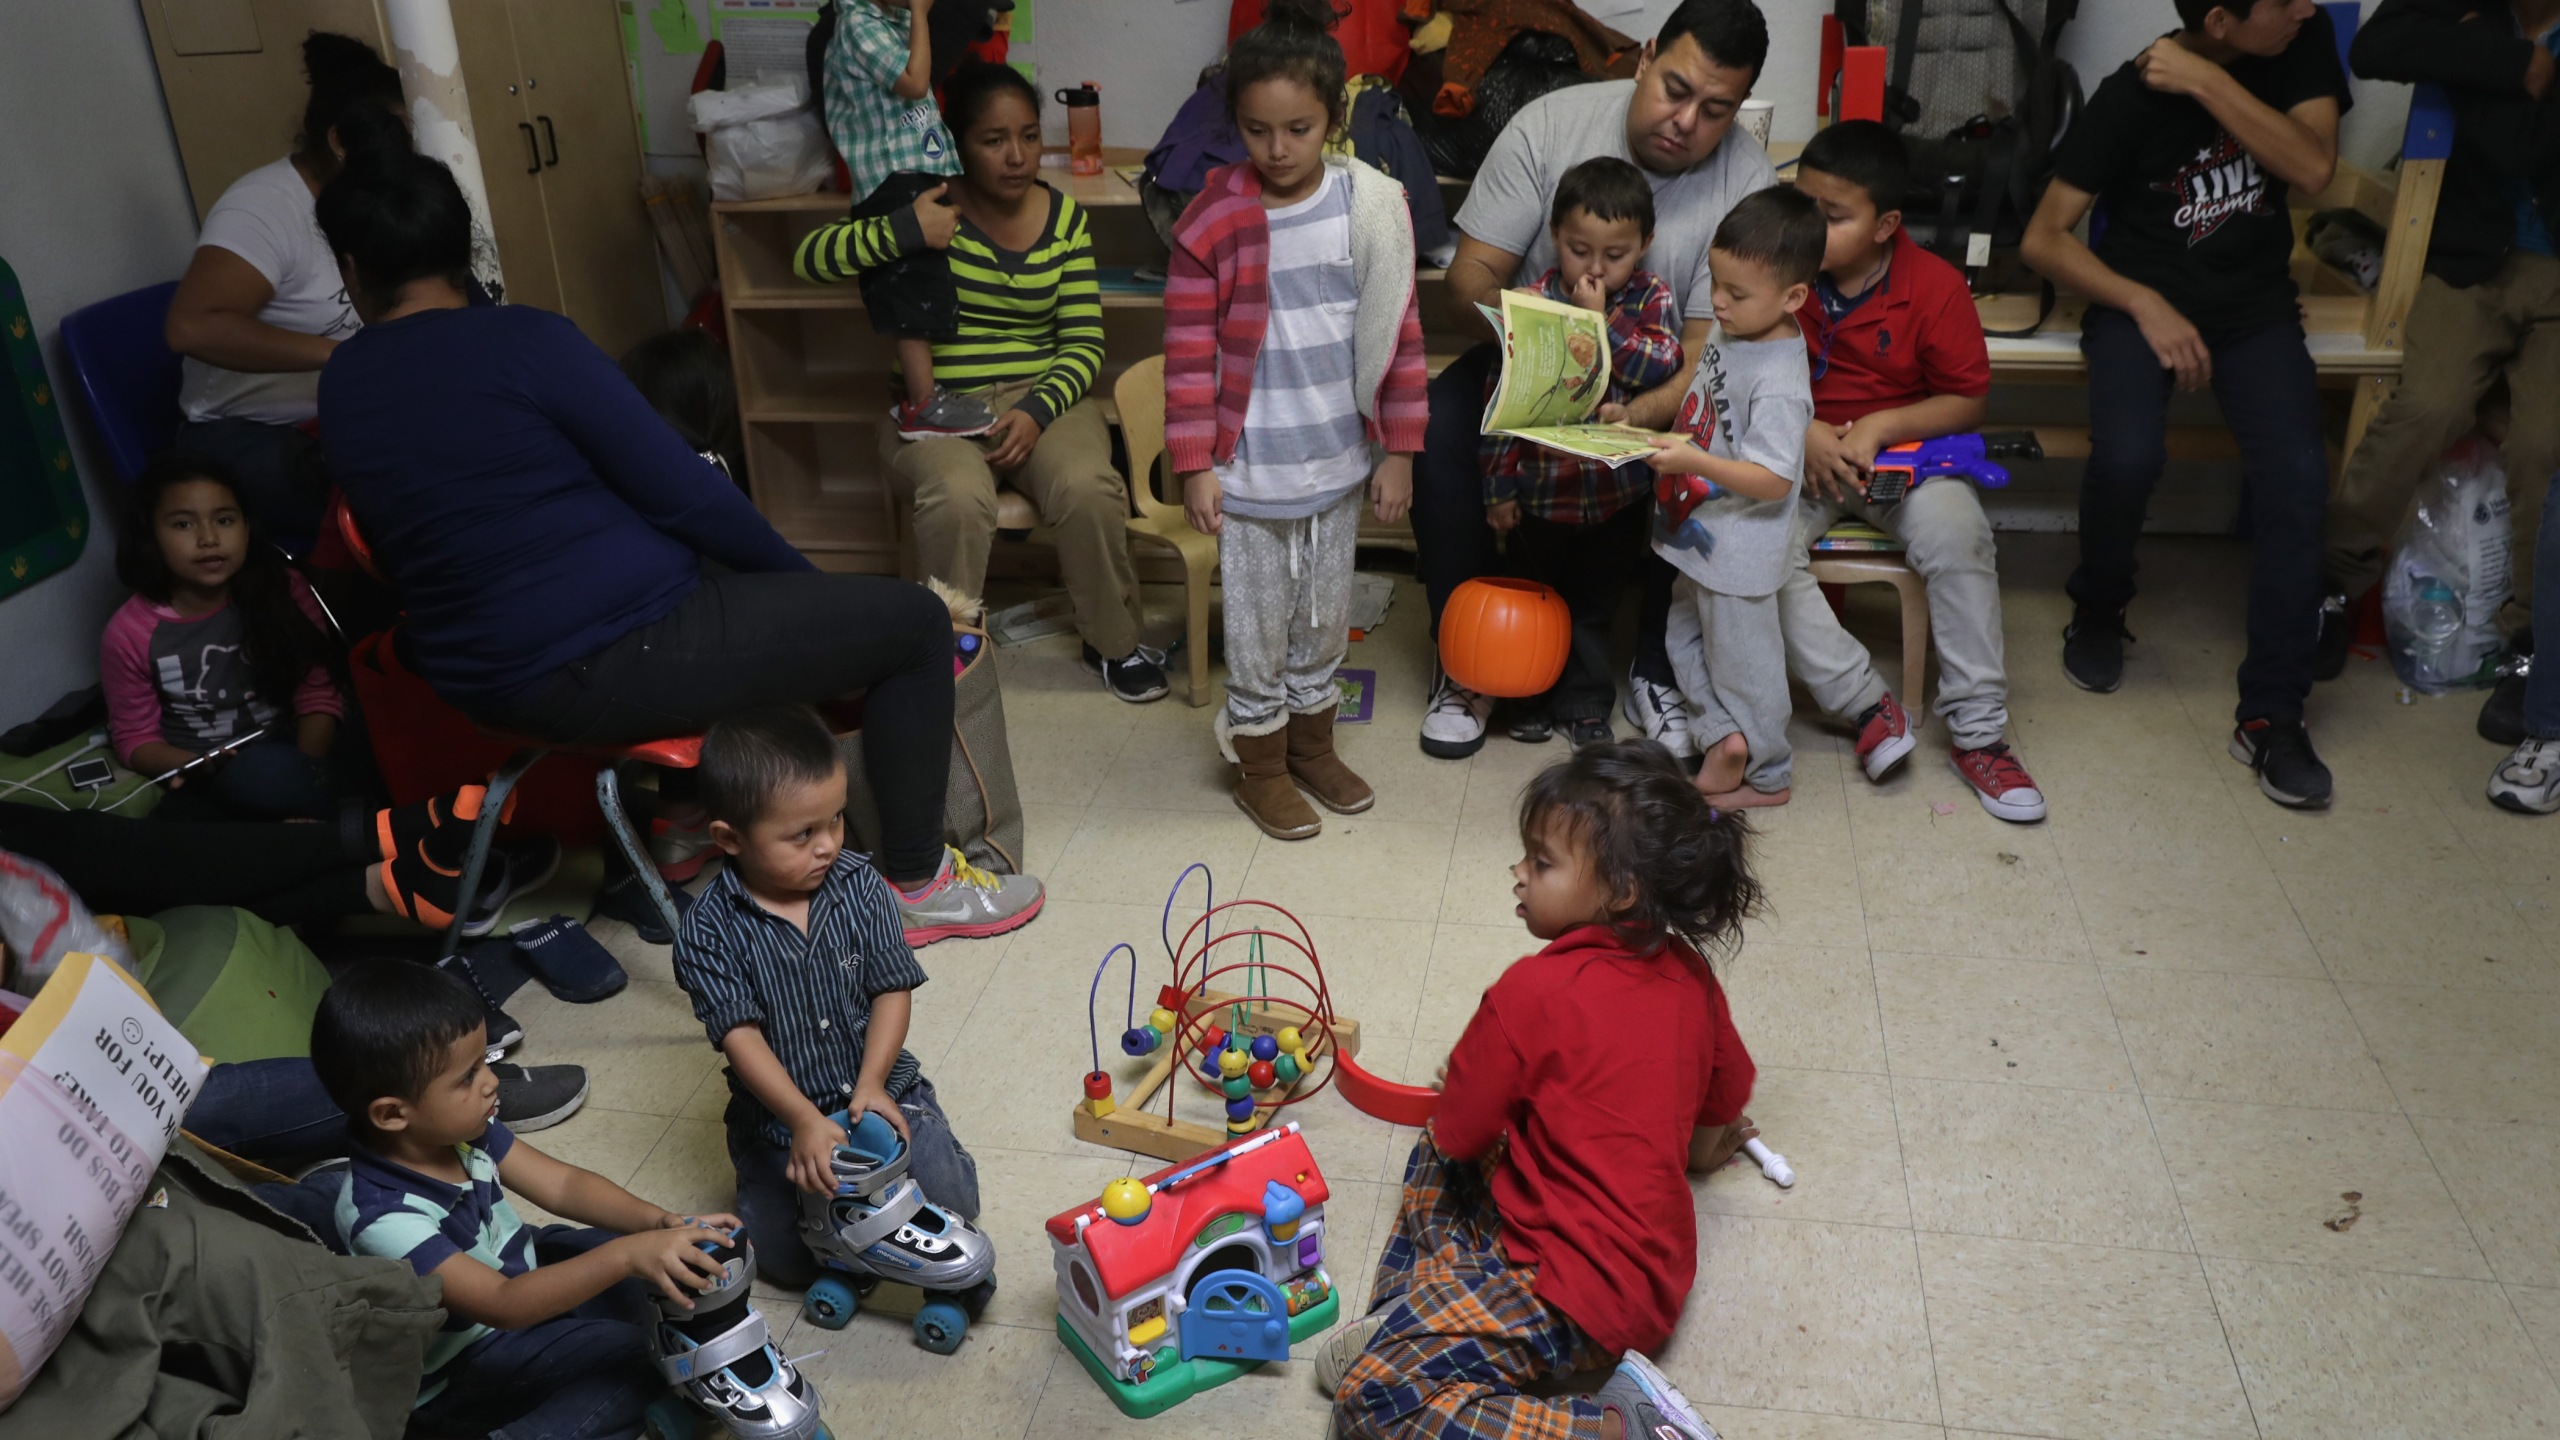 Migrant children read and play at an aid center after being released from U.S. government detention on Nov. 3, 2018 in McAllen, Texas.(Credit: John Moore/Getty Images)